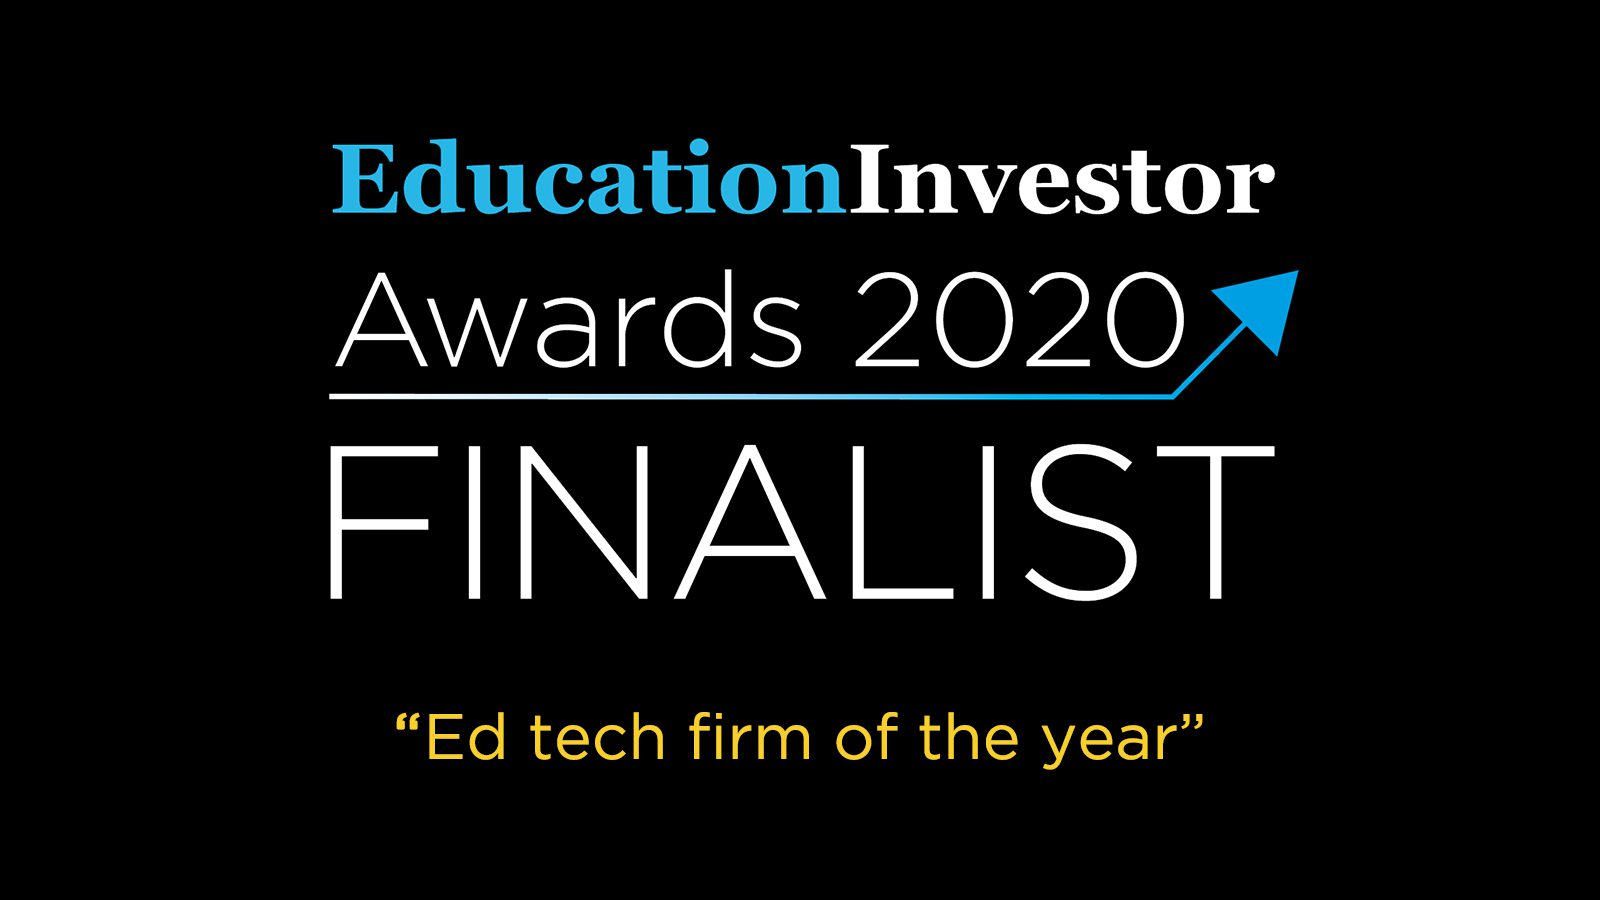 Education Investor Awards 2020: Discovery Education announced as Grand Prix finalist